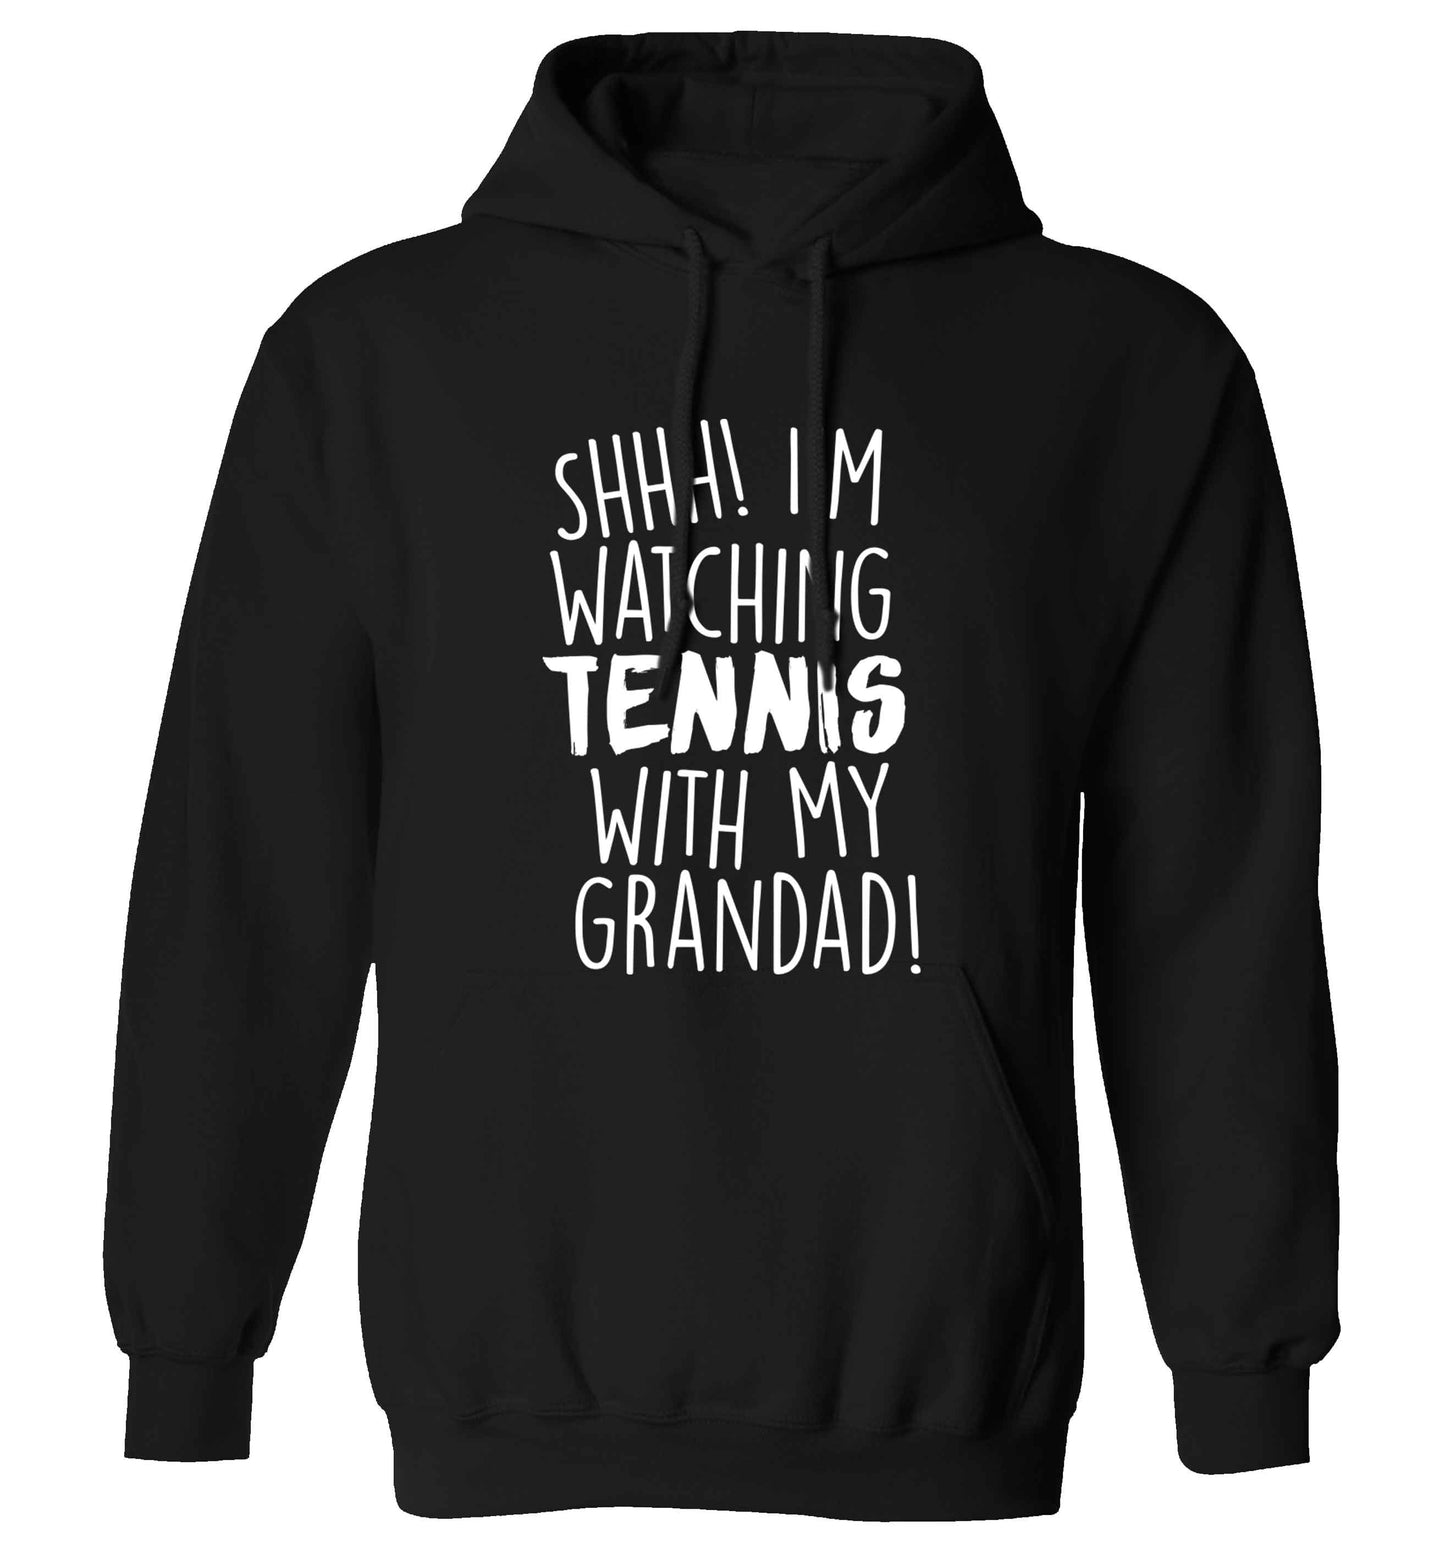 Shh! I'm watching tennis with my grandad! adults unisex black hoodie 2XL